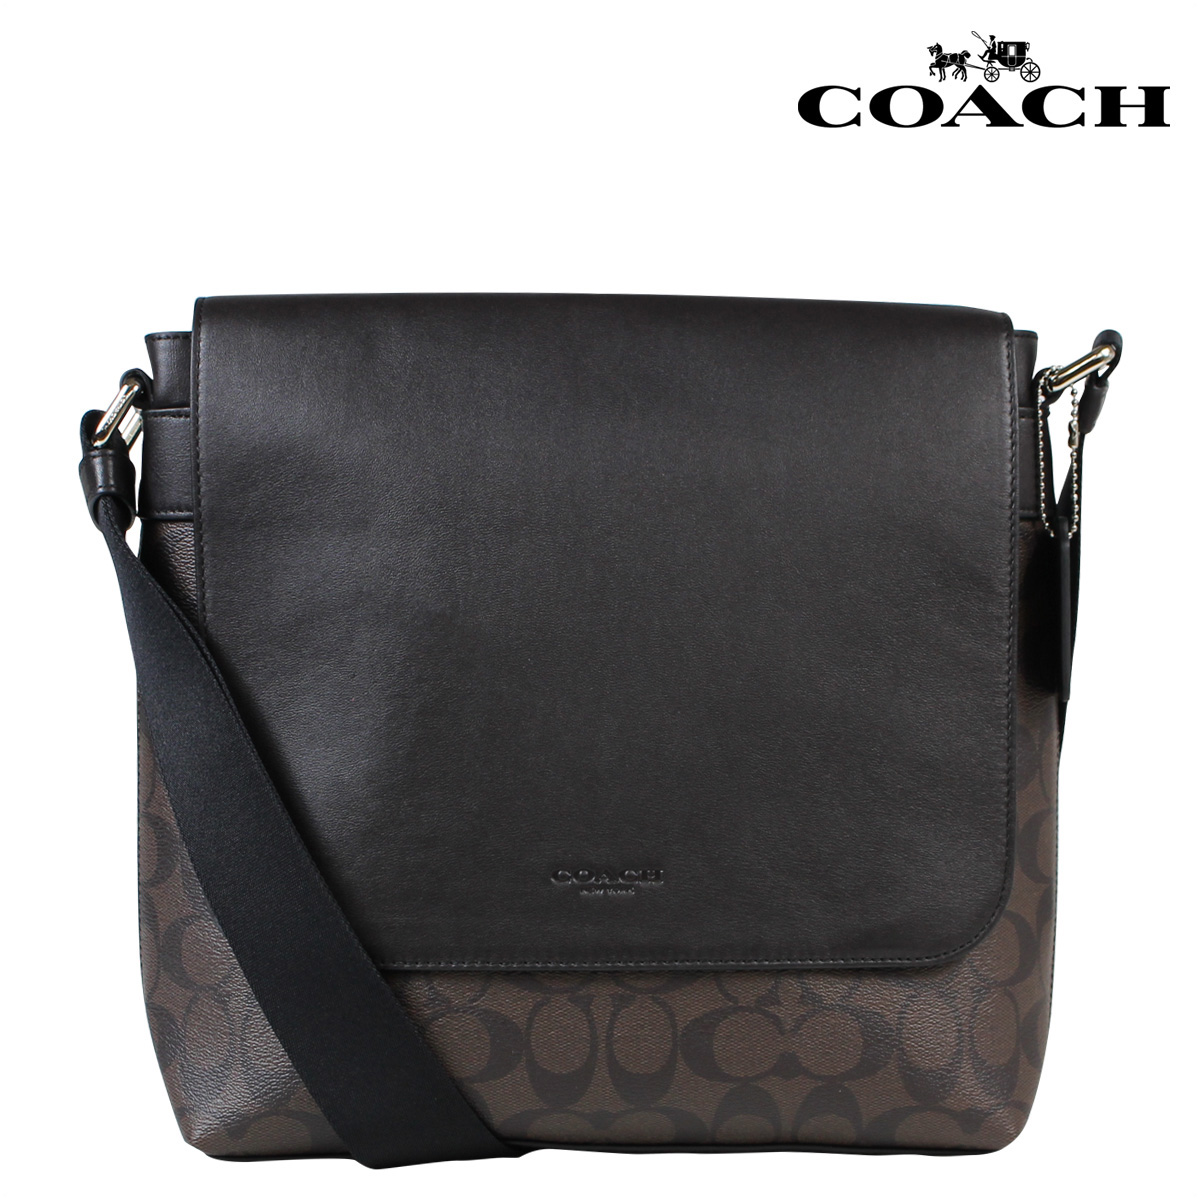 744cf29337 ... australia coach coach mens bags shoulder bag messenger bag 54771 mahogany  x brown 8bb4e cf516